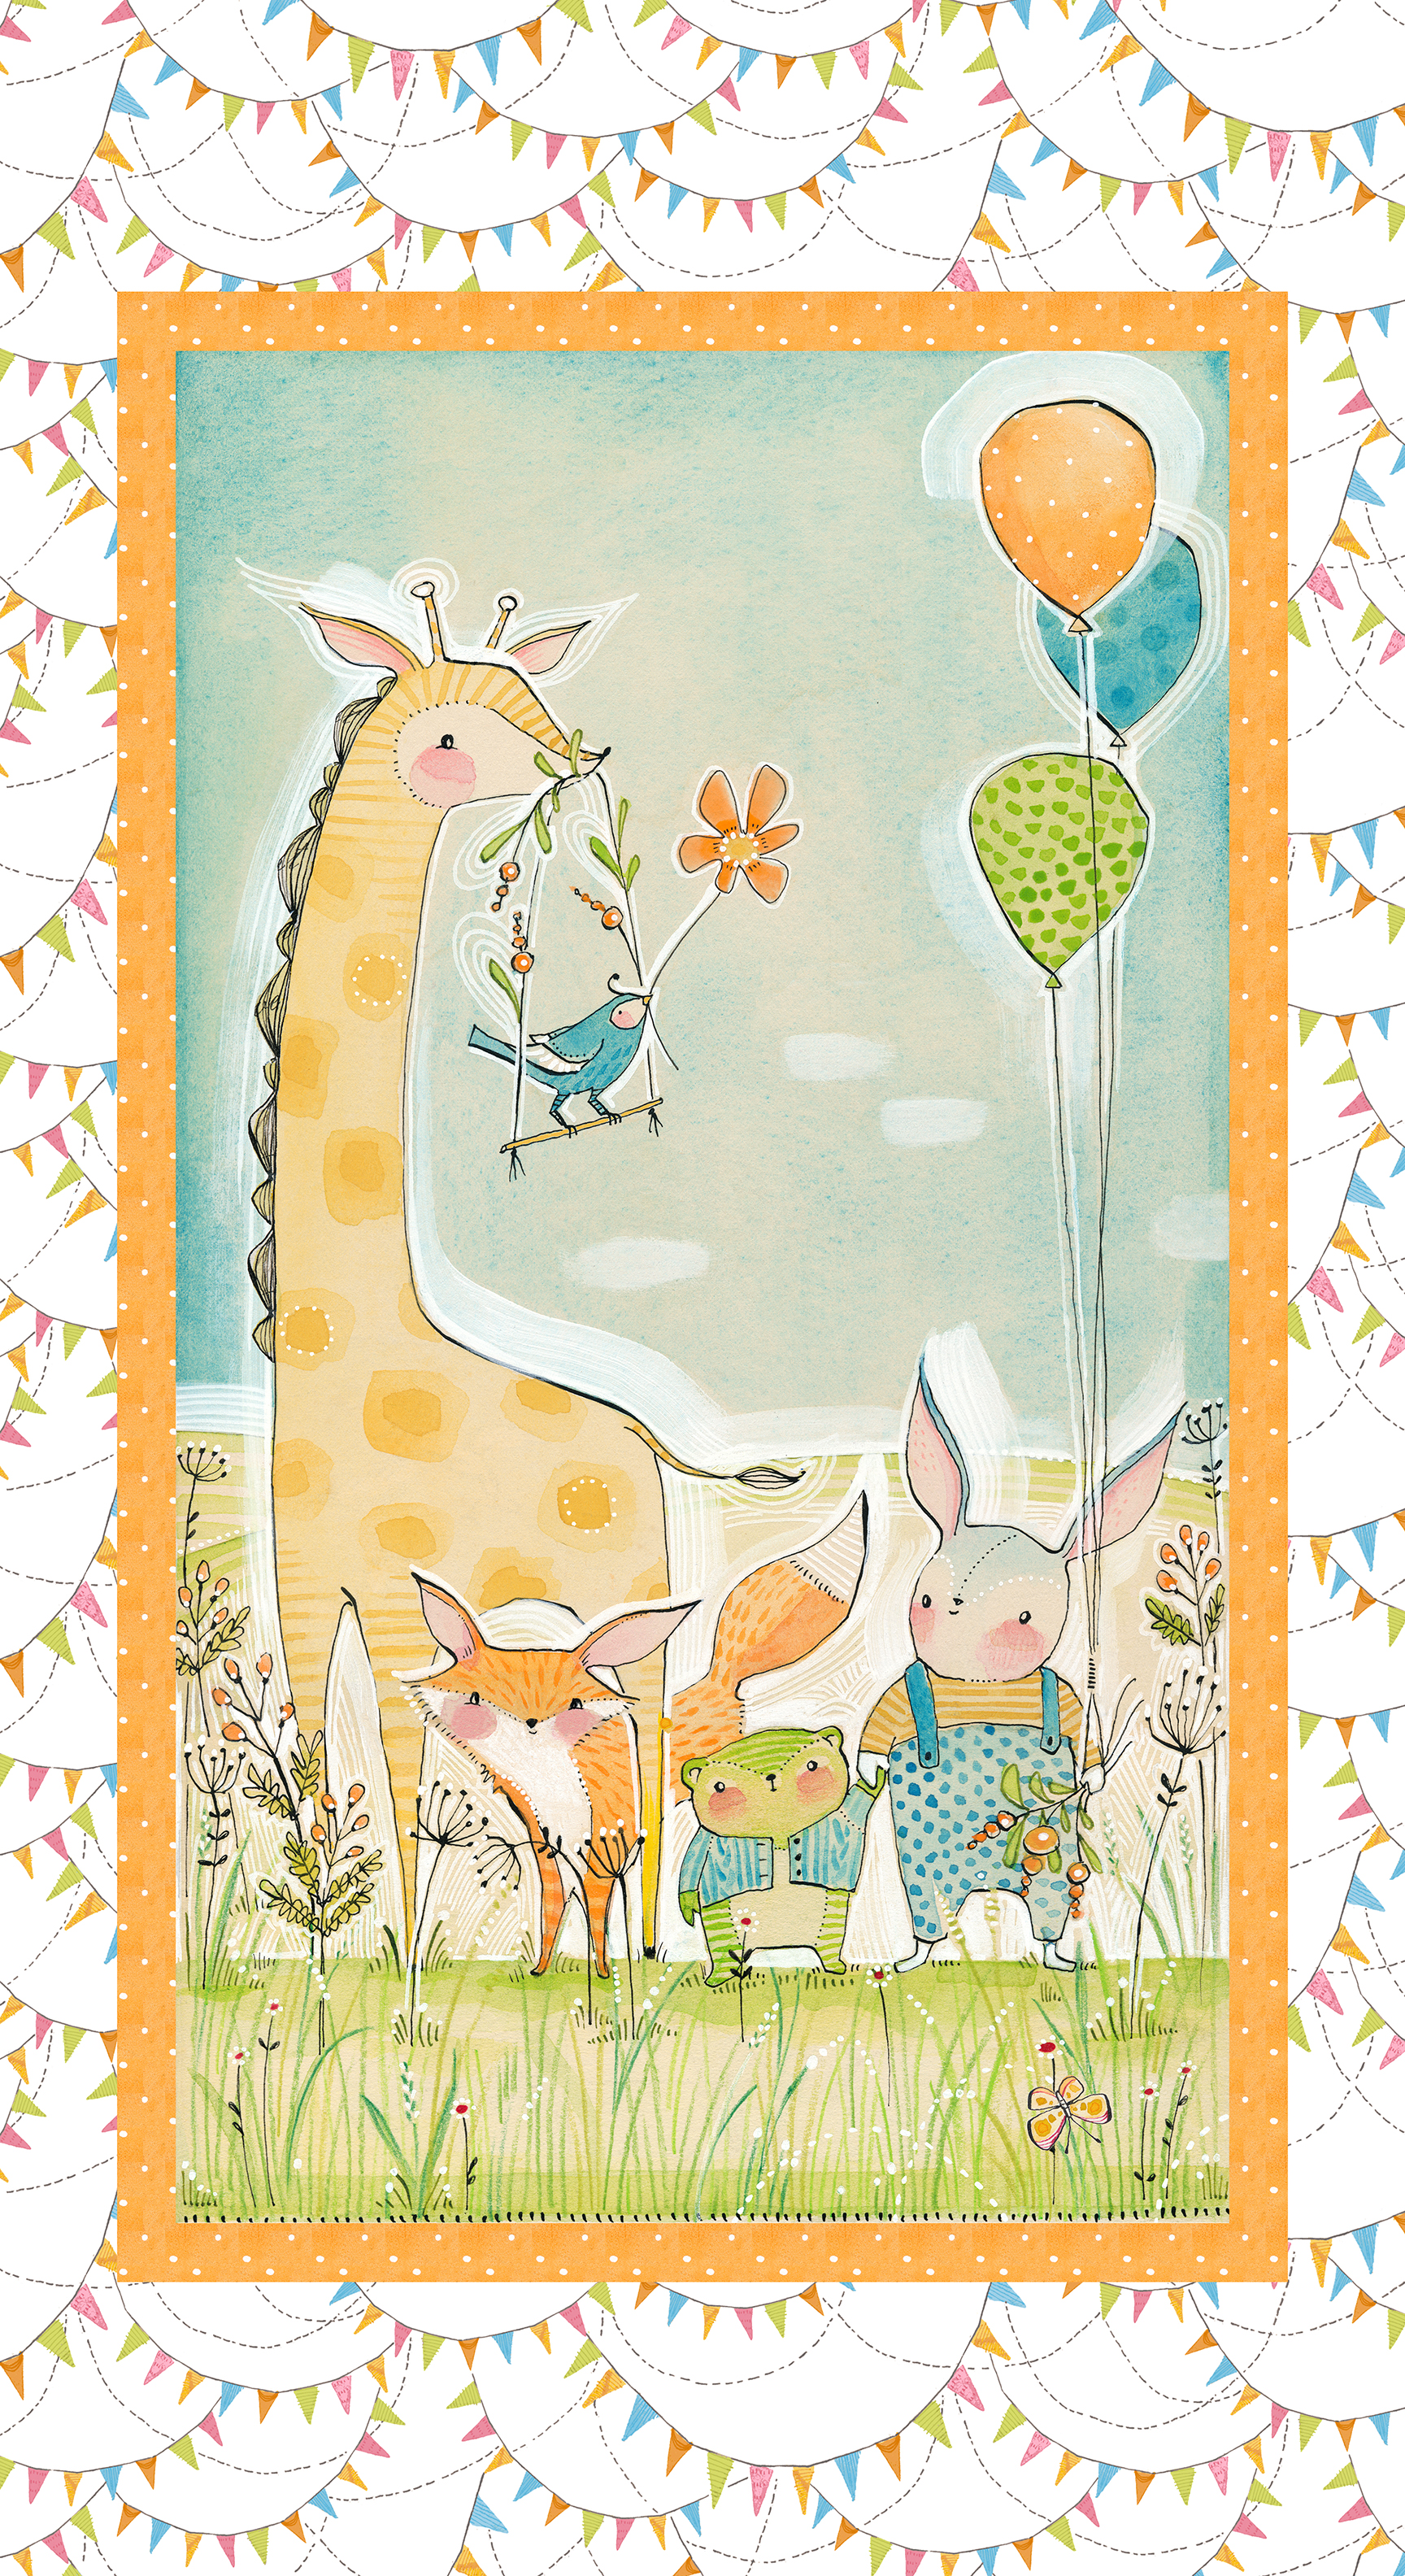 24  panelWee Pals Panel by Cori Dantini from the Hello World... Good Day collection for Blend #112.103.08.1